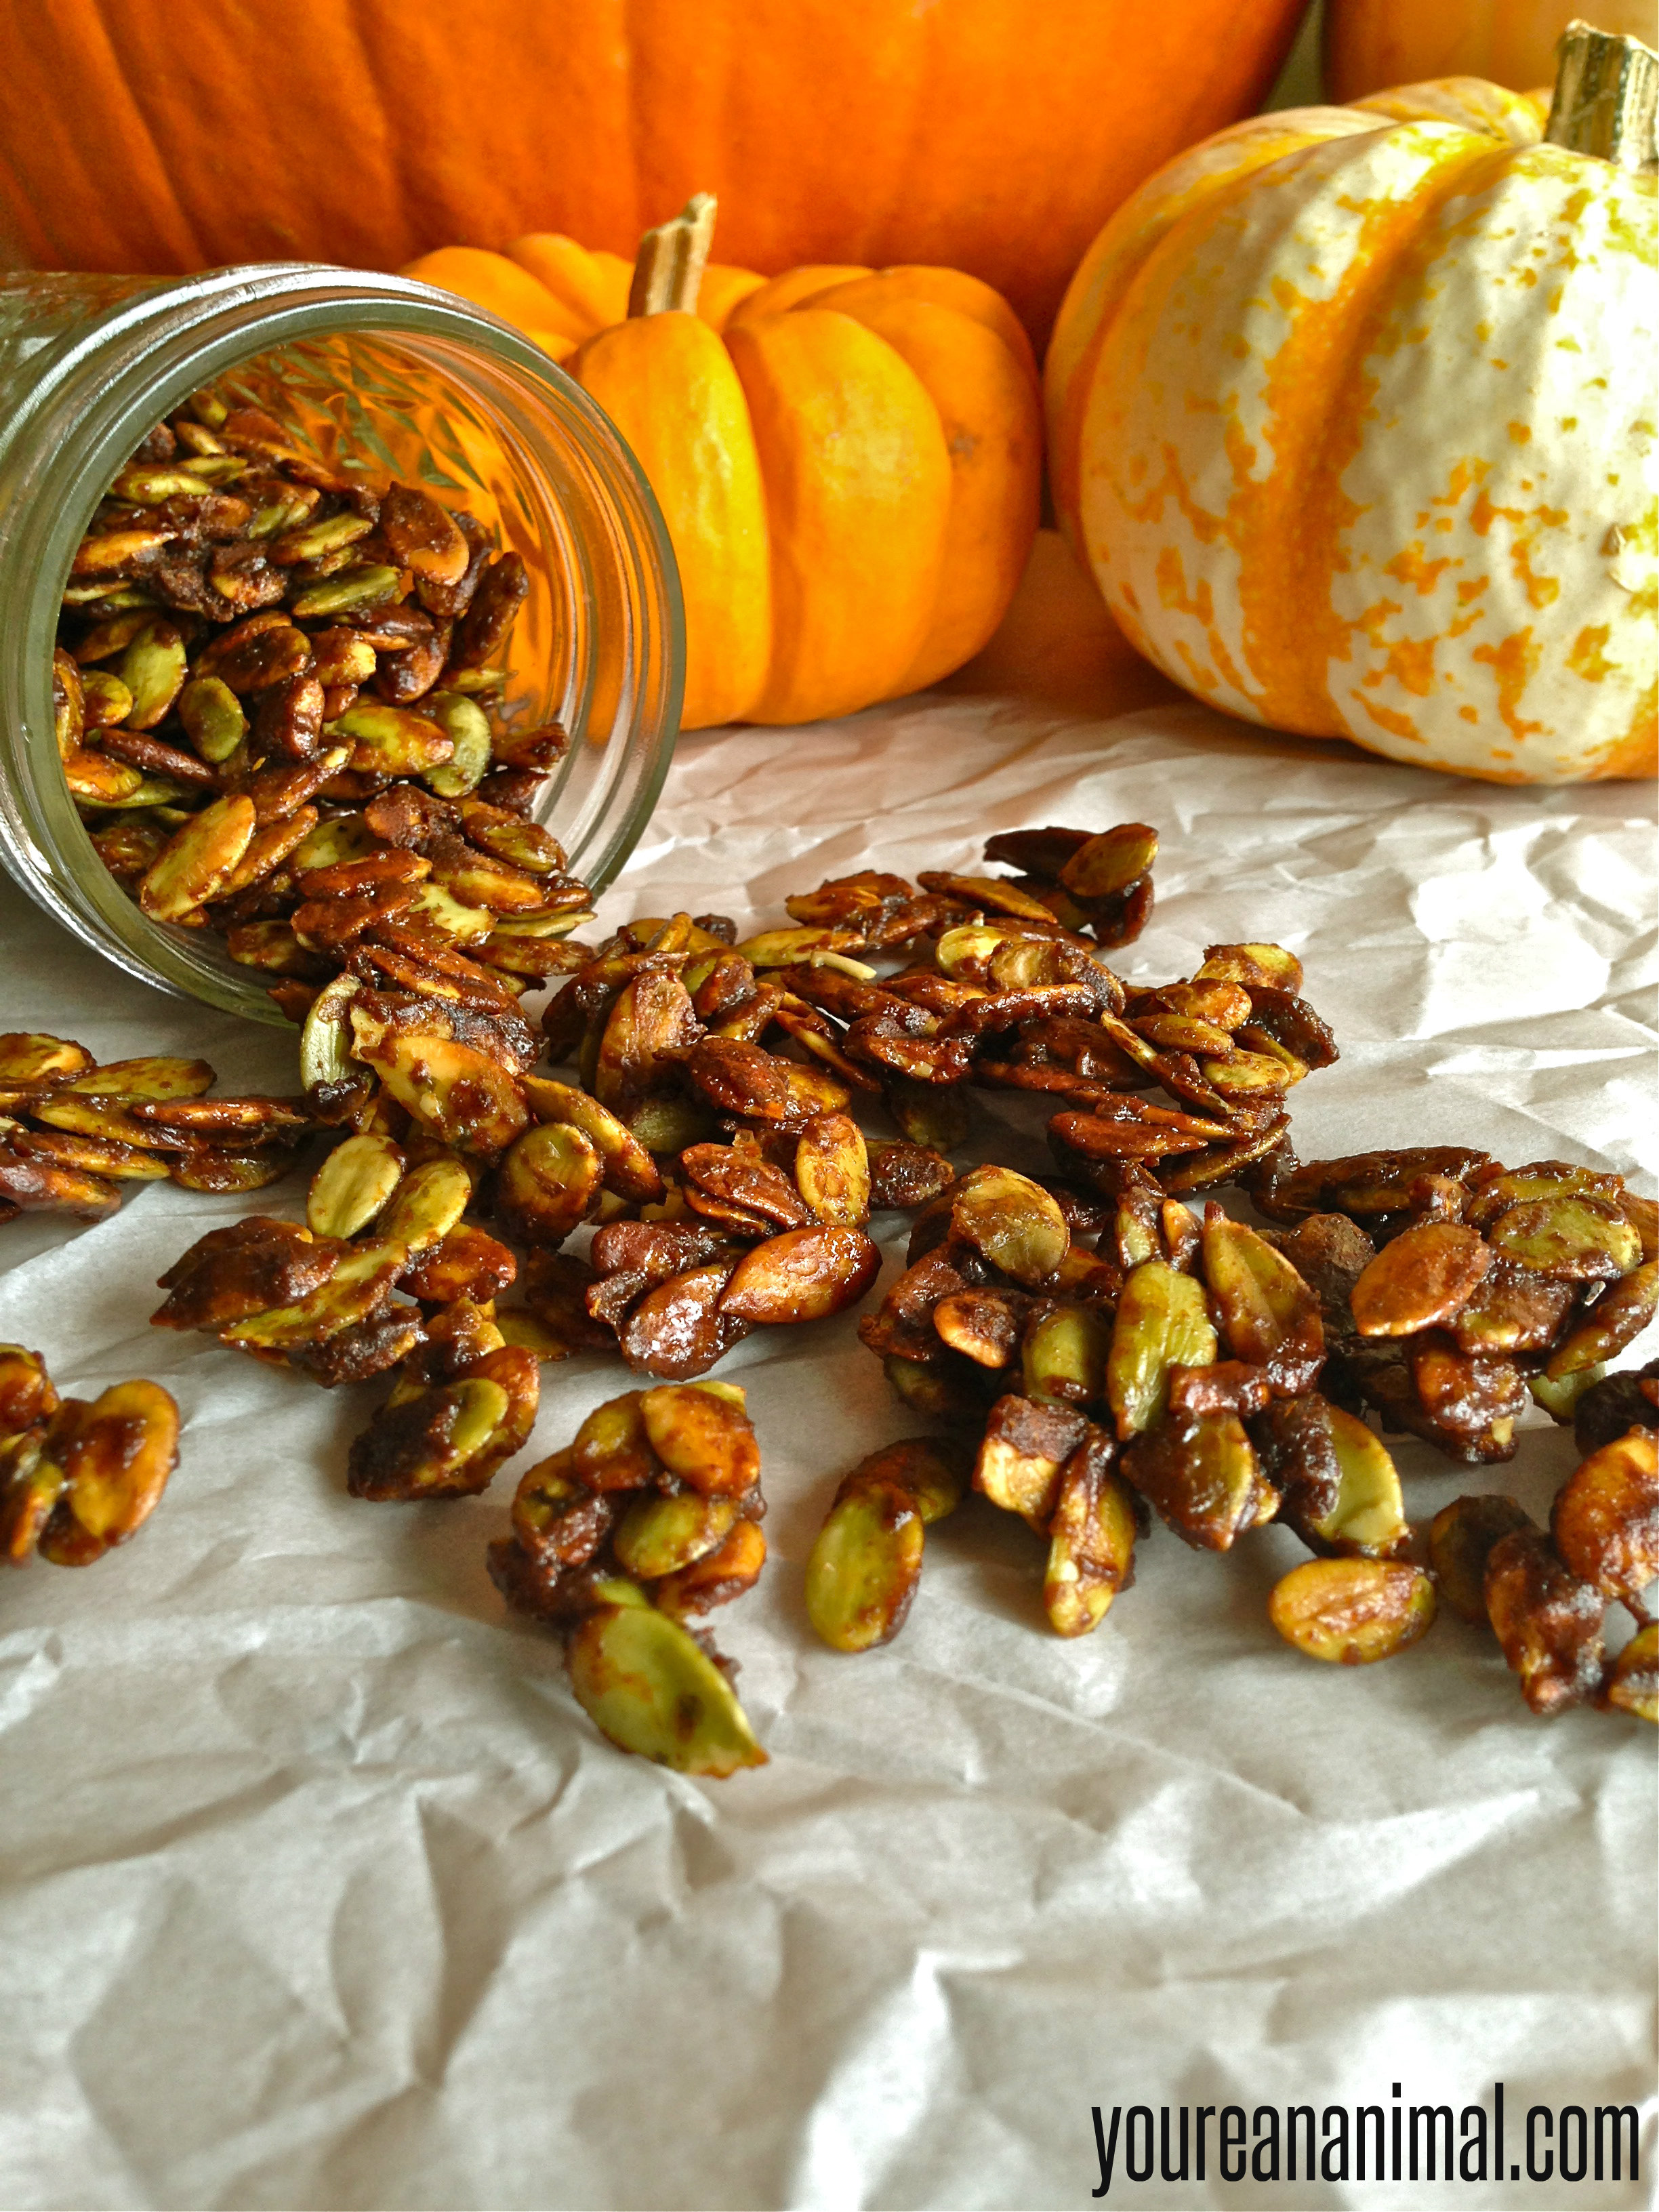 Autumn Salad with Spiced Pumpkin Seeds - You're An Animal.